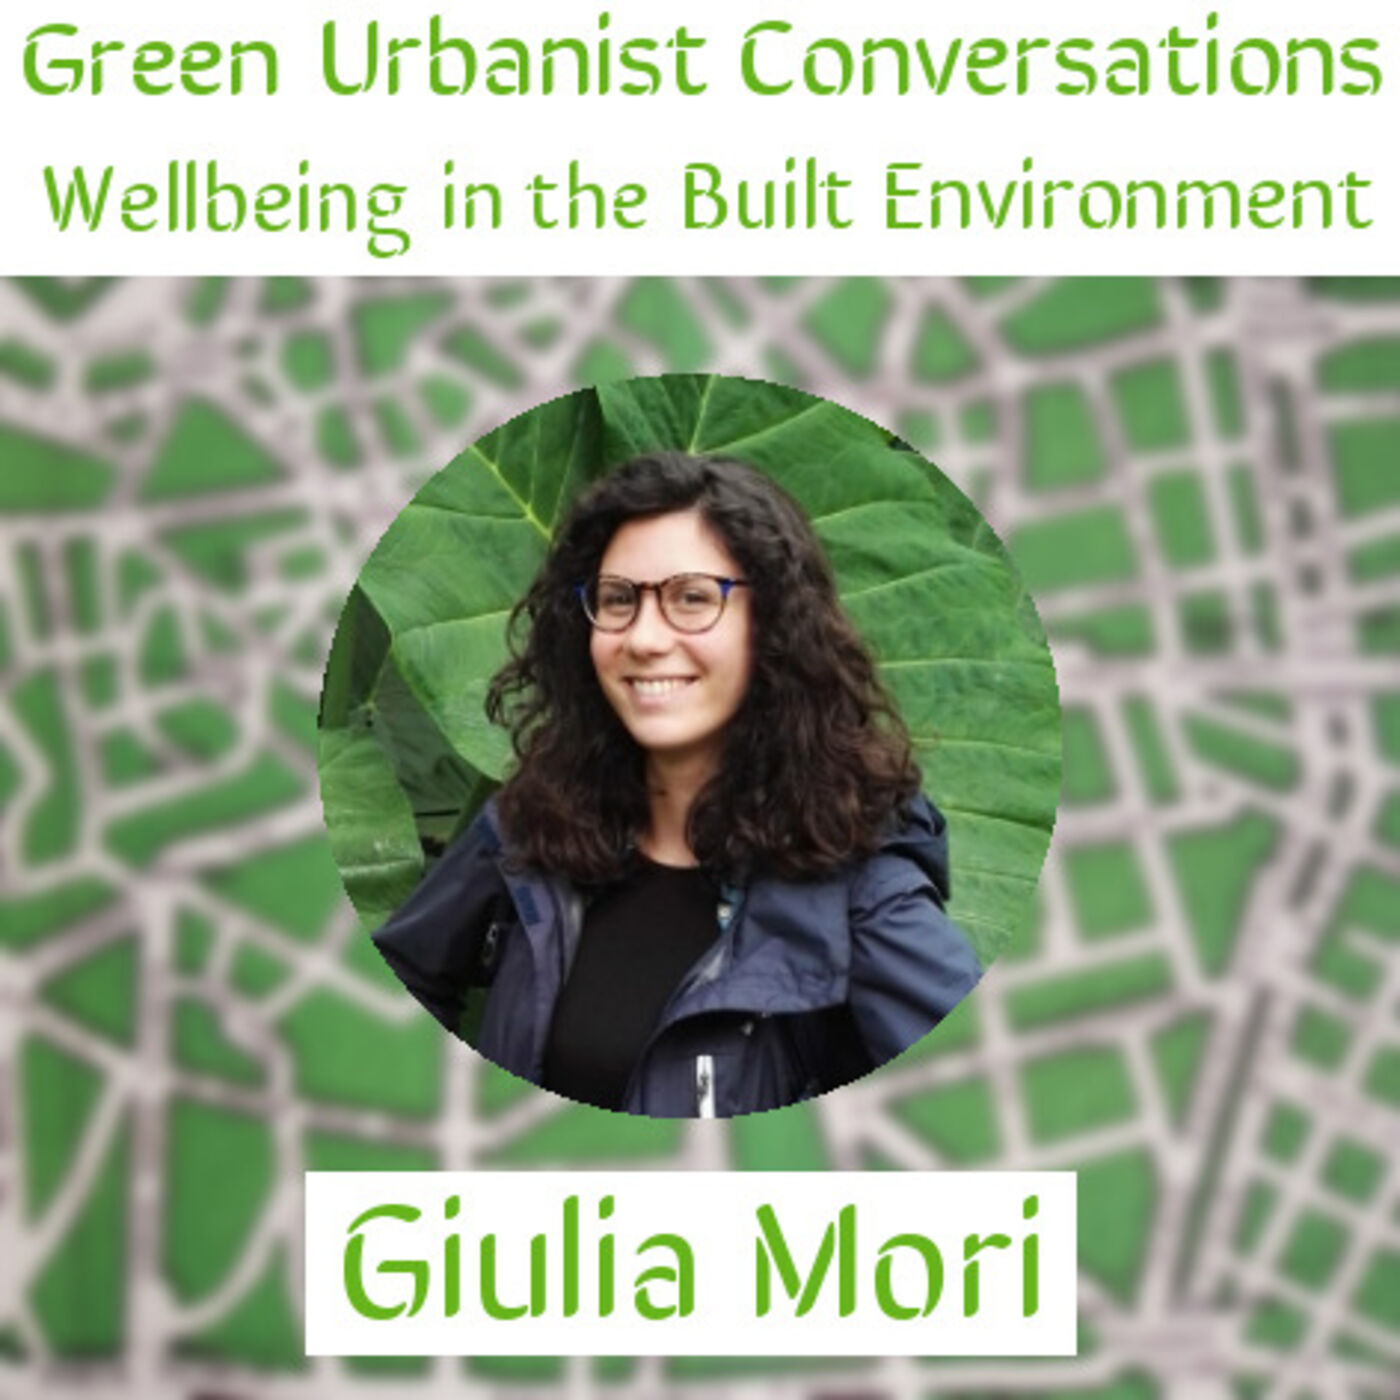 #3: Giulia Mori - Wellbeing in the Built Environment